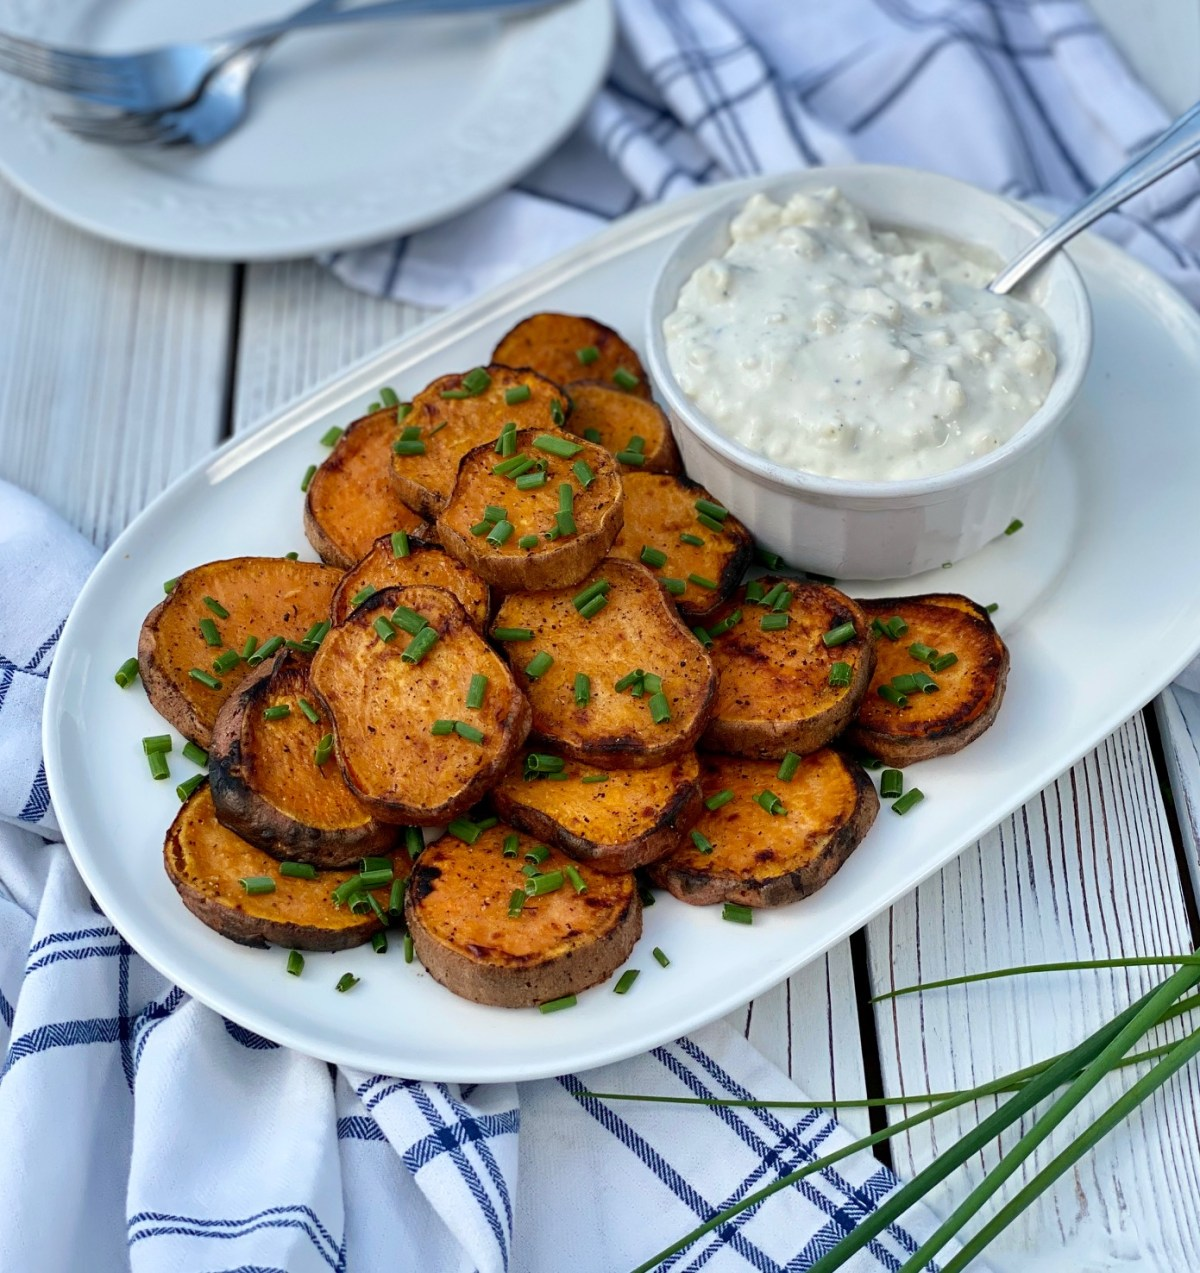 Grilled Sweet Potatoes by Happylifeblogspot.com #sweetpotatoes #grilledsweetpotatoes #grillrecipes #summersidedish #howtogrillsweetpotatoes #summerrecipes #grillrecipes #bbqfood #cookoutfood